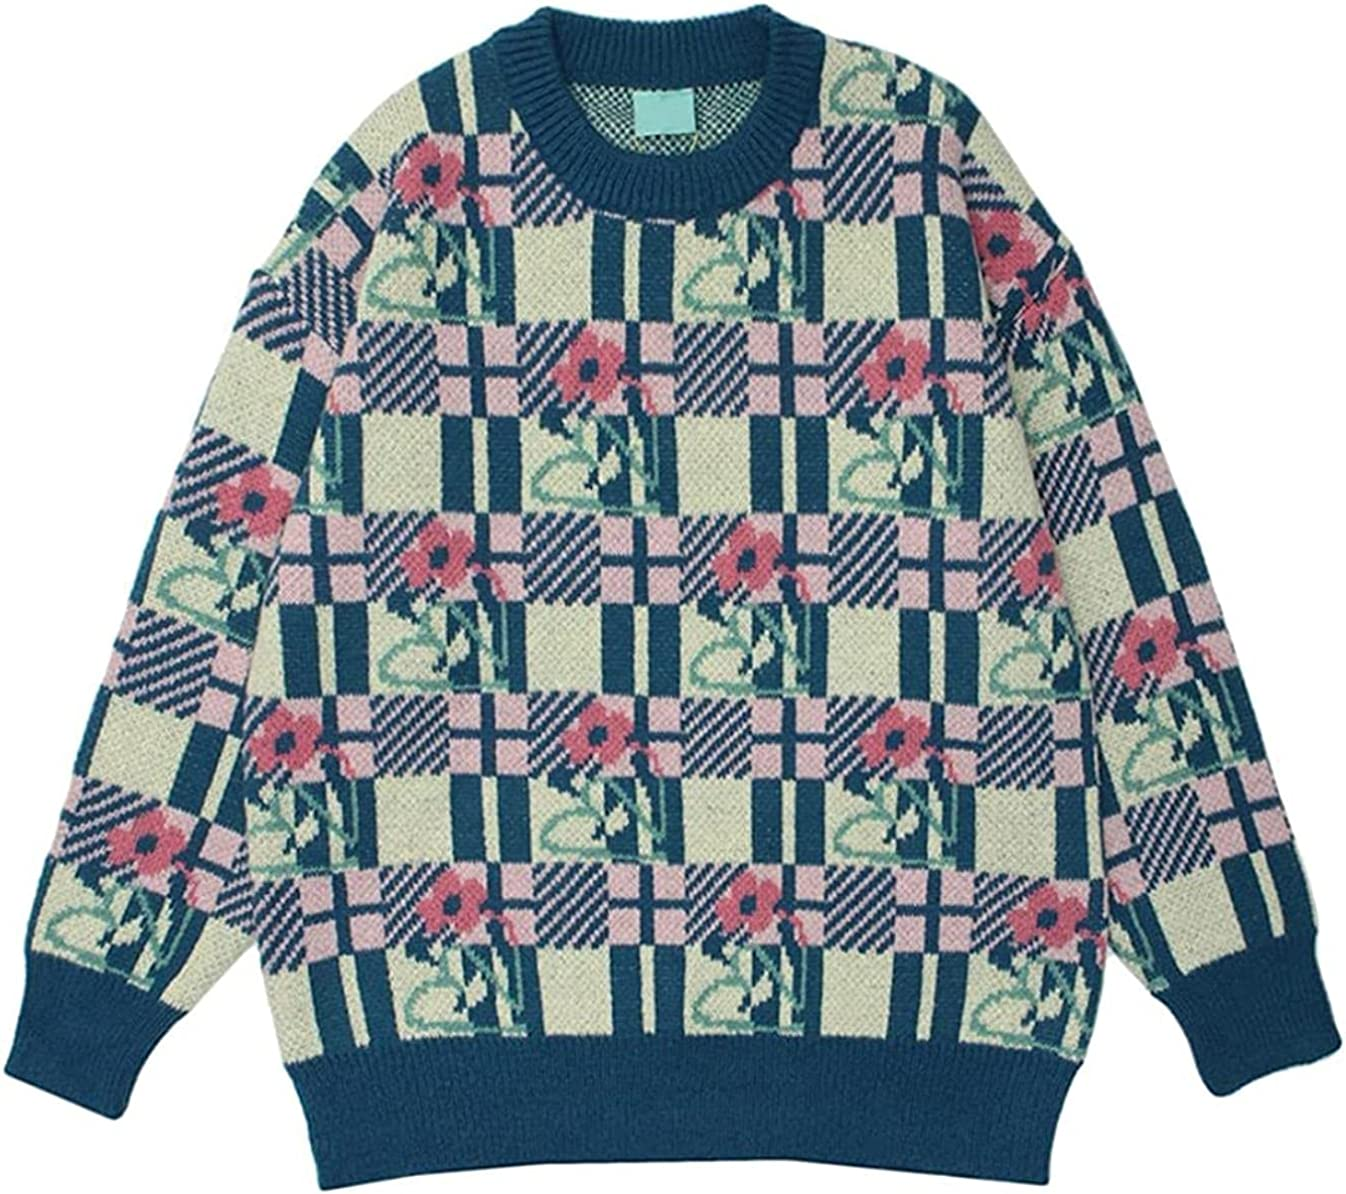 Floral Plaid Sweater for Men Autumn Pullover Knitwear Oversized Korean Style Sweater Couple Clothing